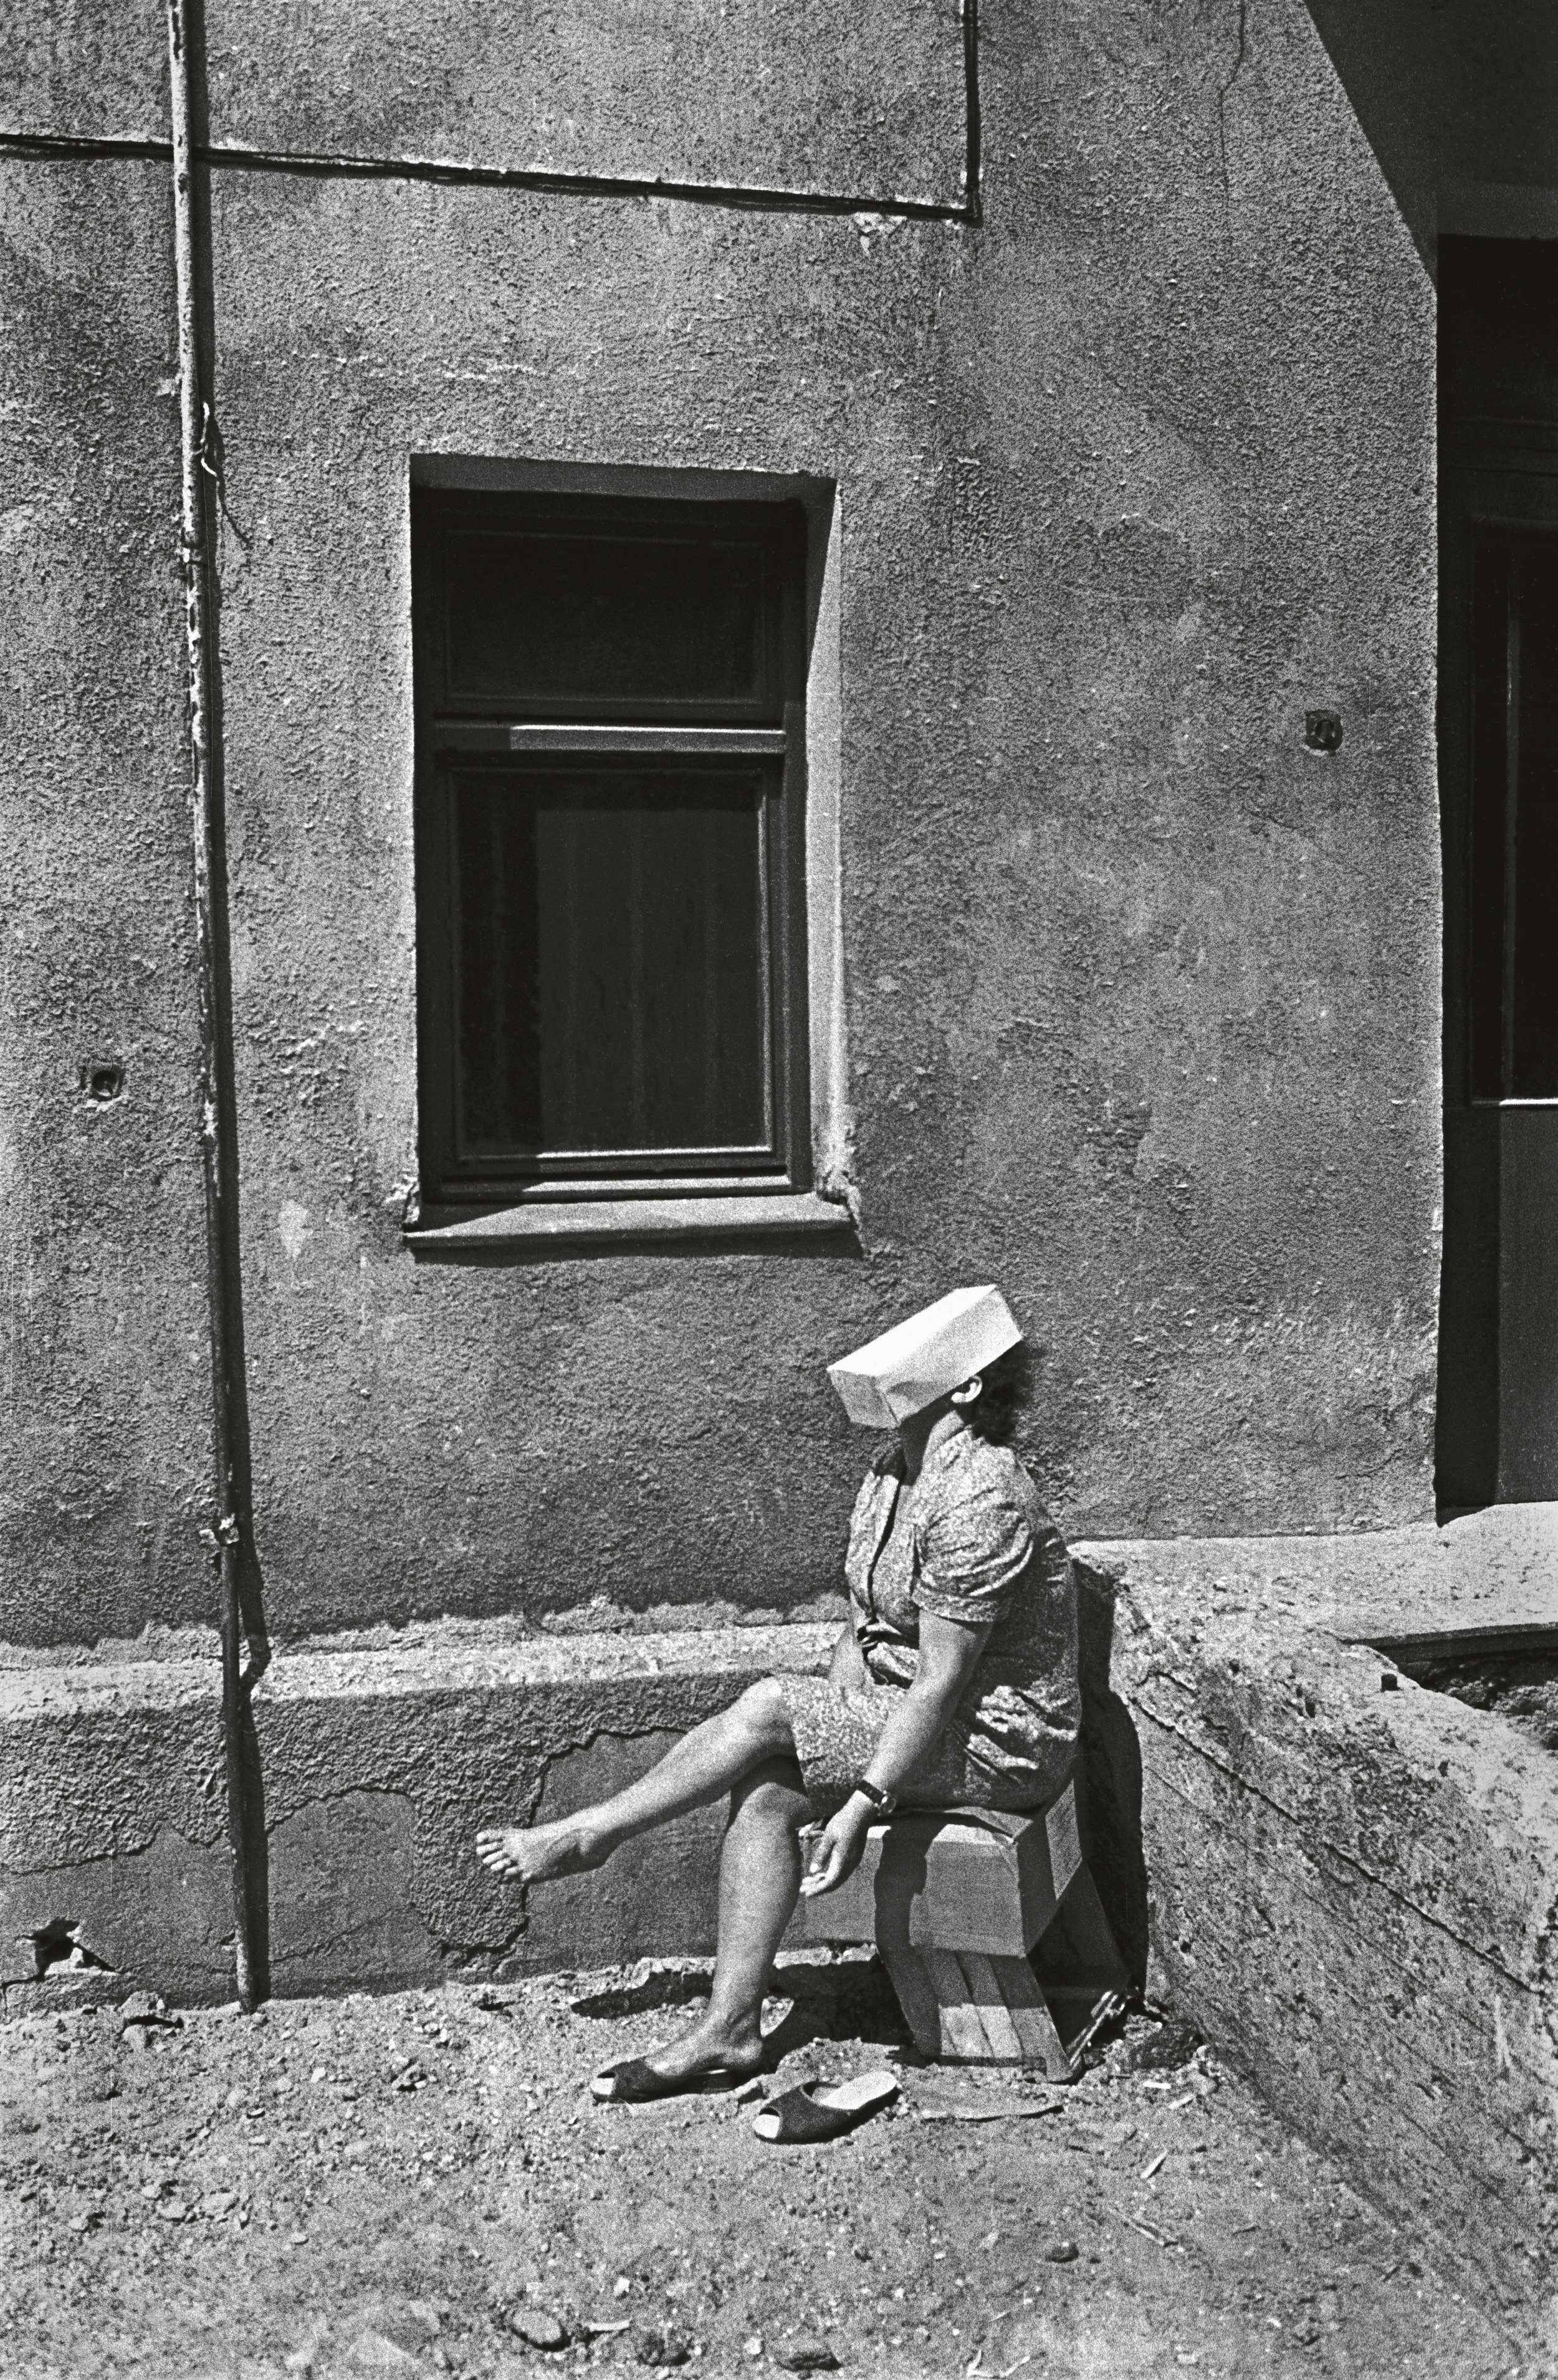 Romualdas Po  žerskis,   Old Towns of Lithuania   , 1976-1982.   Daily Life: Photography from Lithuania   on view at The Print Center, Philadelphia.